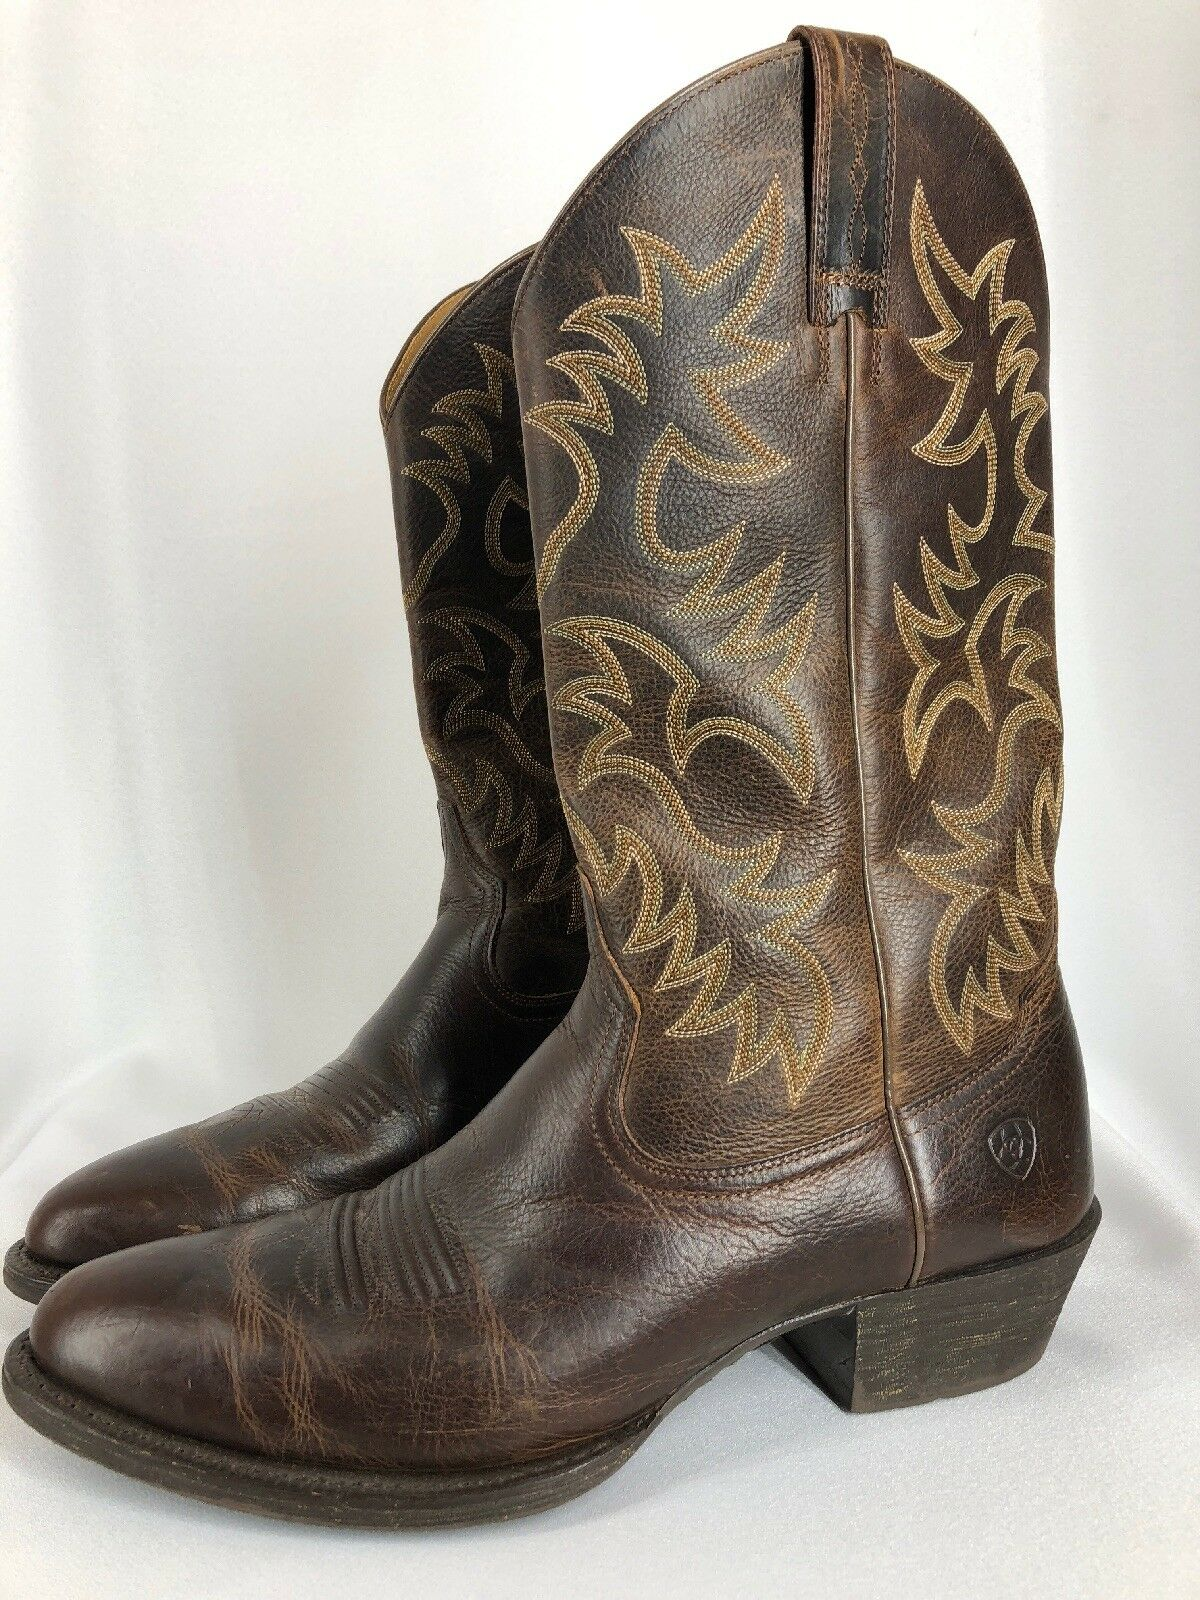 Ariat Men's Cowboy Boots Size 13 B NARROW  Genuine Leather WESTERN Brown